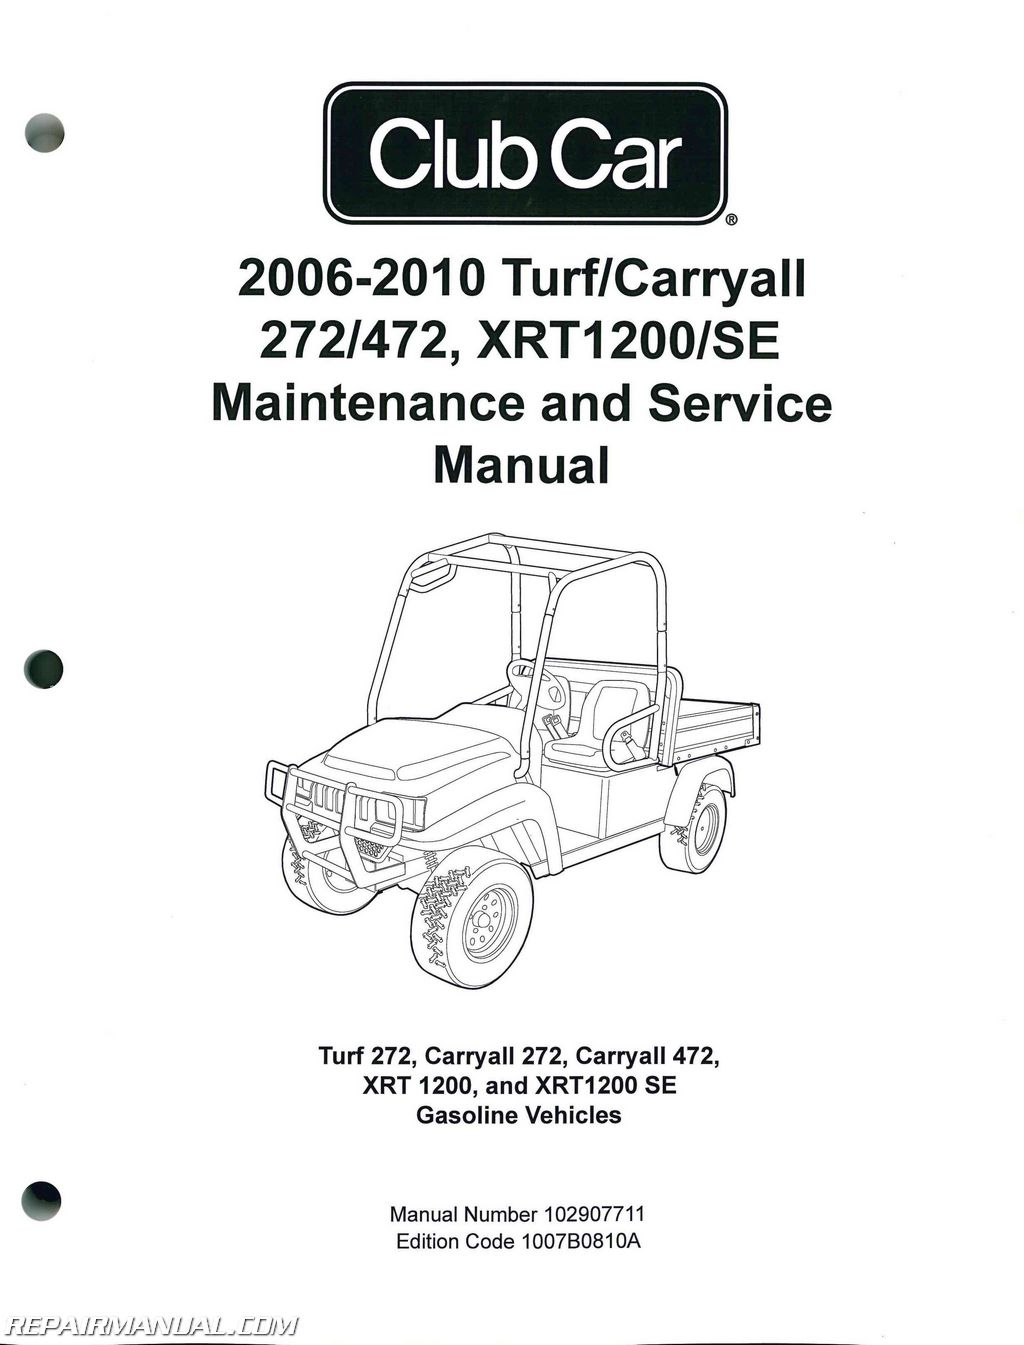 hight resolution of 2006 2010 club car turf carryall 272 472 xrt1200 se turf 272 carryall 272 carryall 472 xrt 1200 and xrt1200 se gas service manual